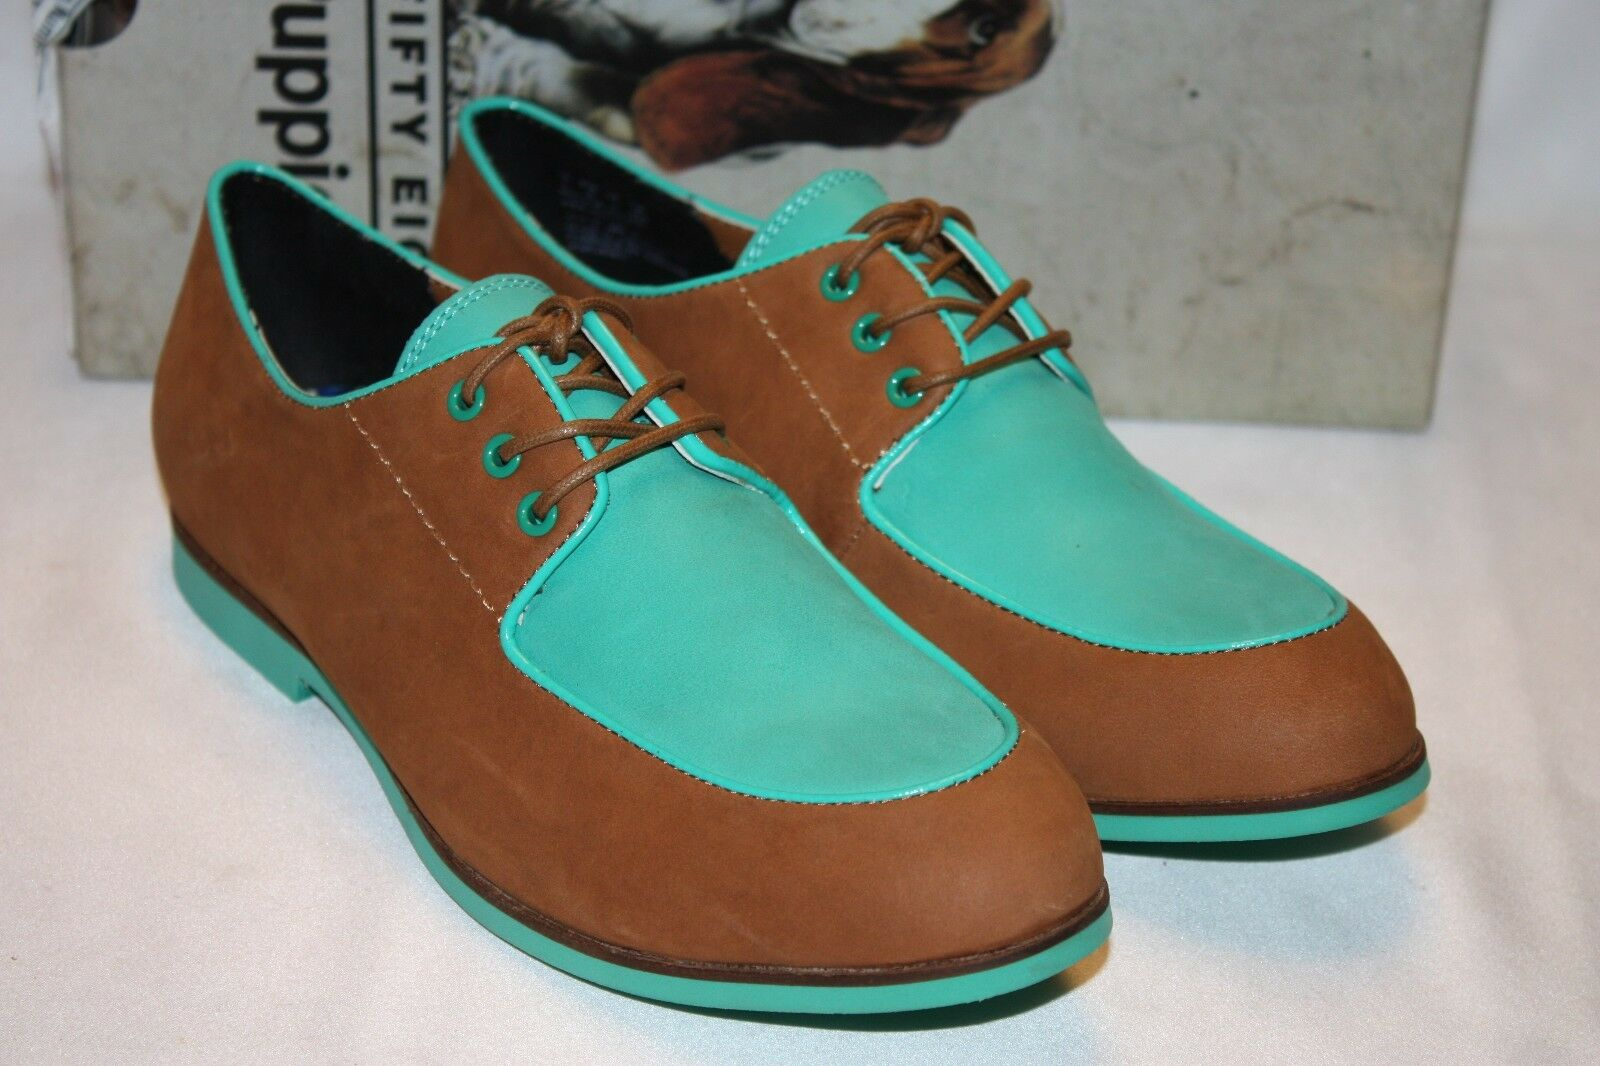 NEW NIB HUSH PUPPIES Tan Turquoise GRAHAM BLUCHER Two Tone Lace Up Oxford Loafer